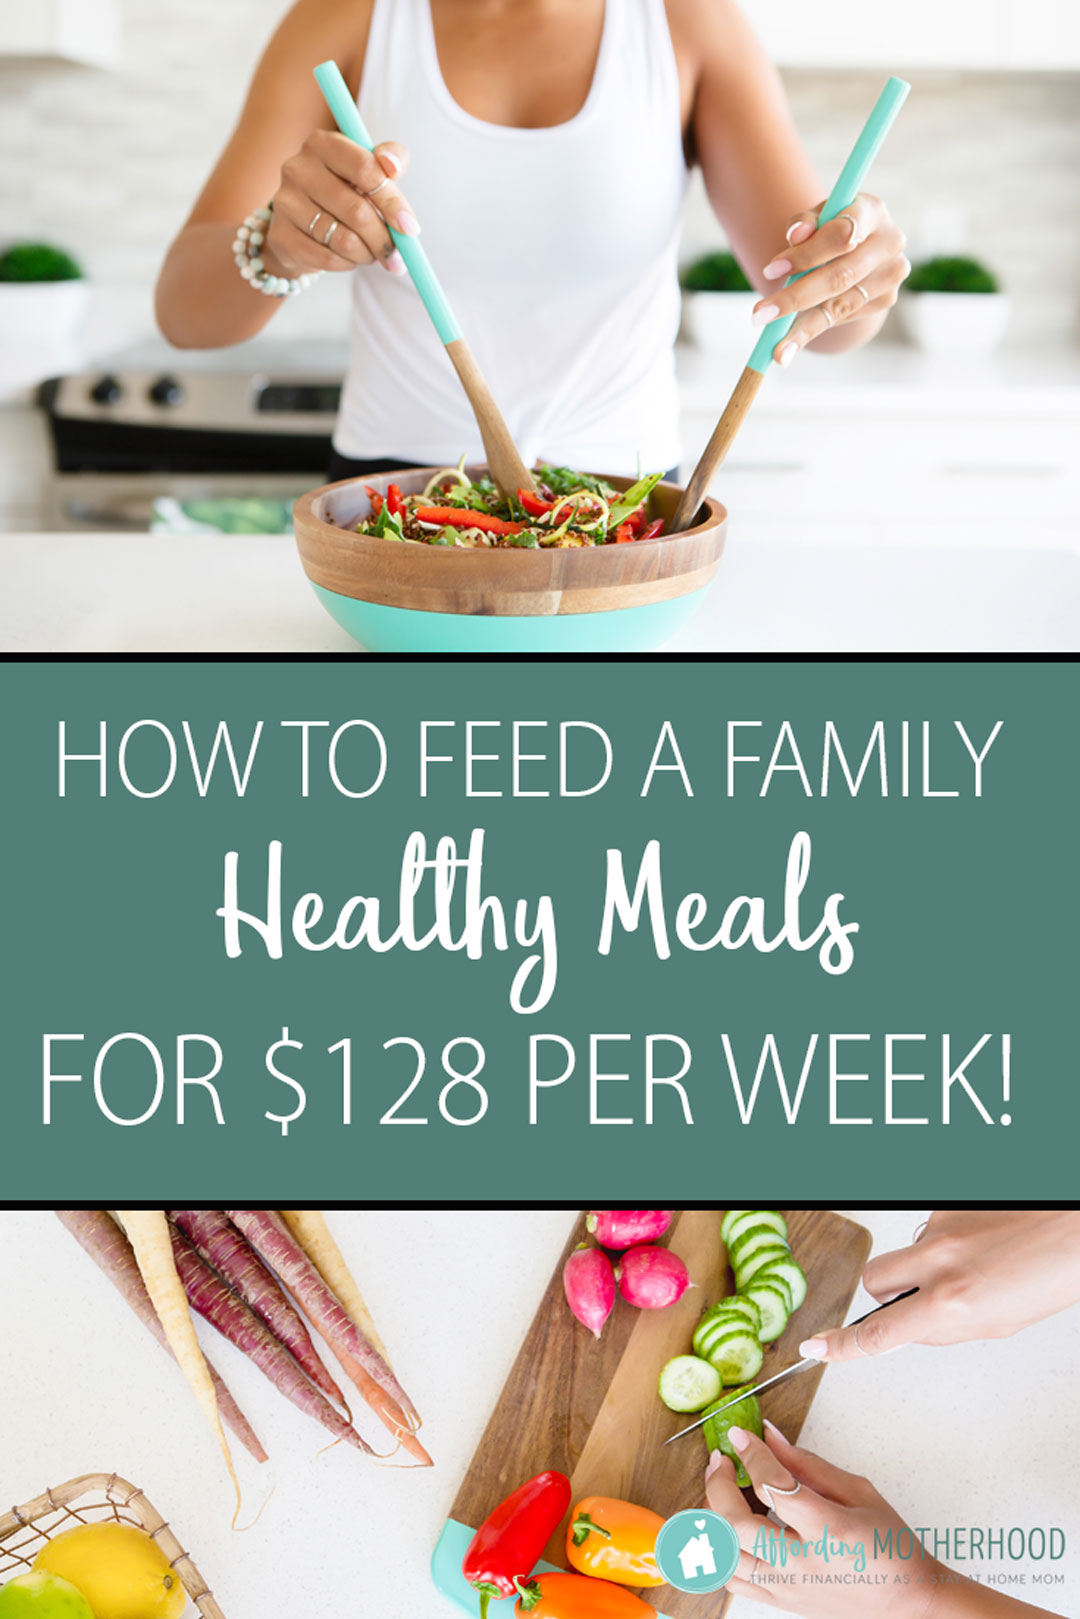 Budget Grocery List - How to Feed a Family Healthy Meals on